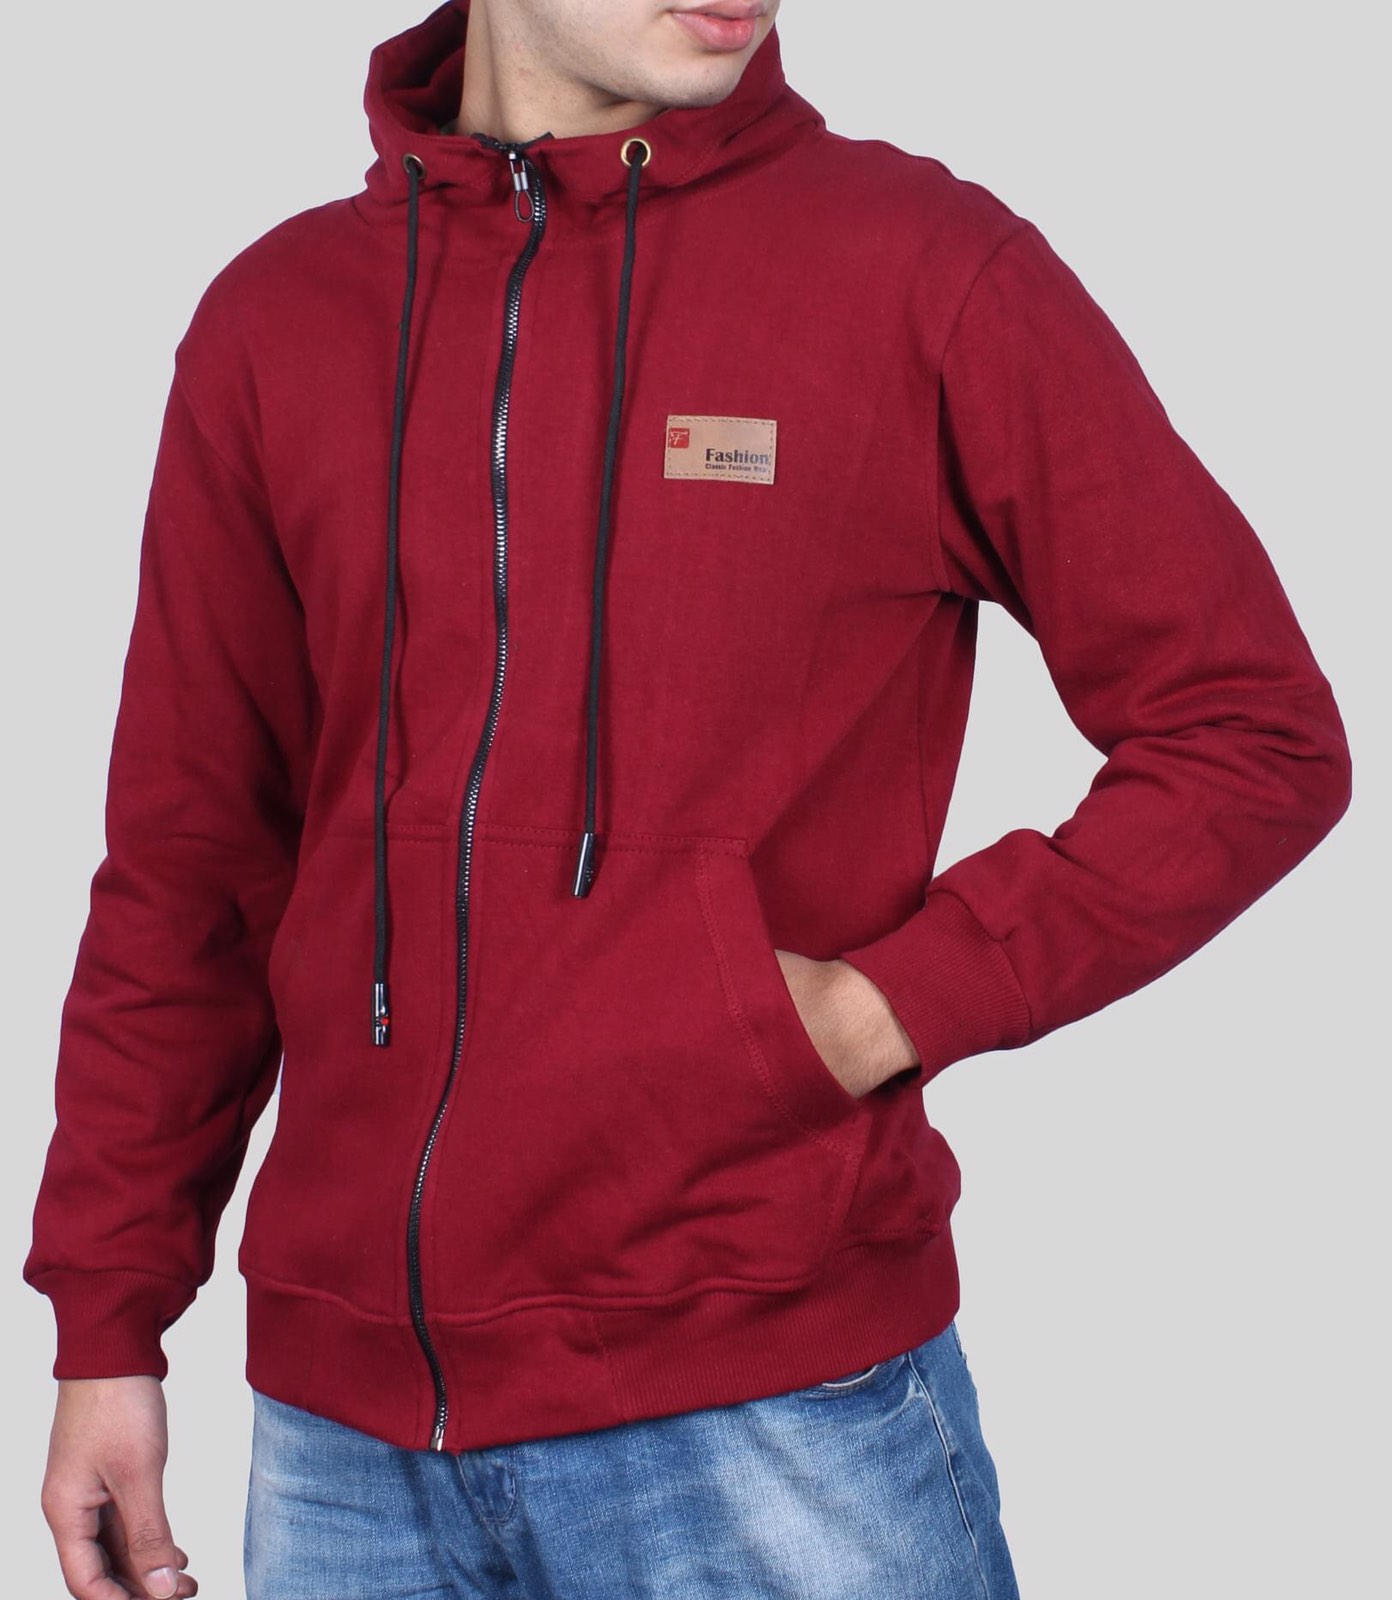 Men's Jumper Hoodie With Chain And Pocket For Autumn Season New Fashion